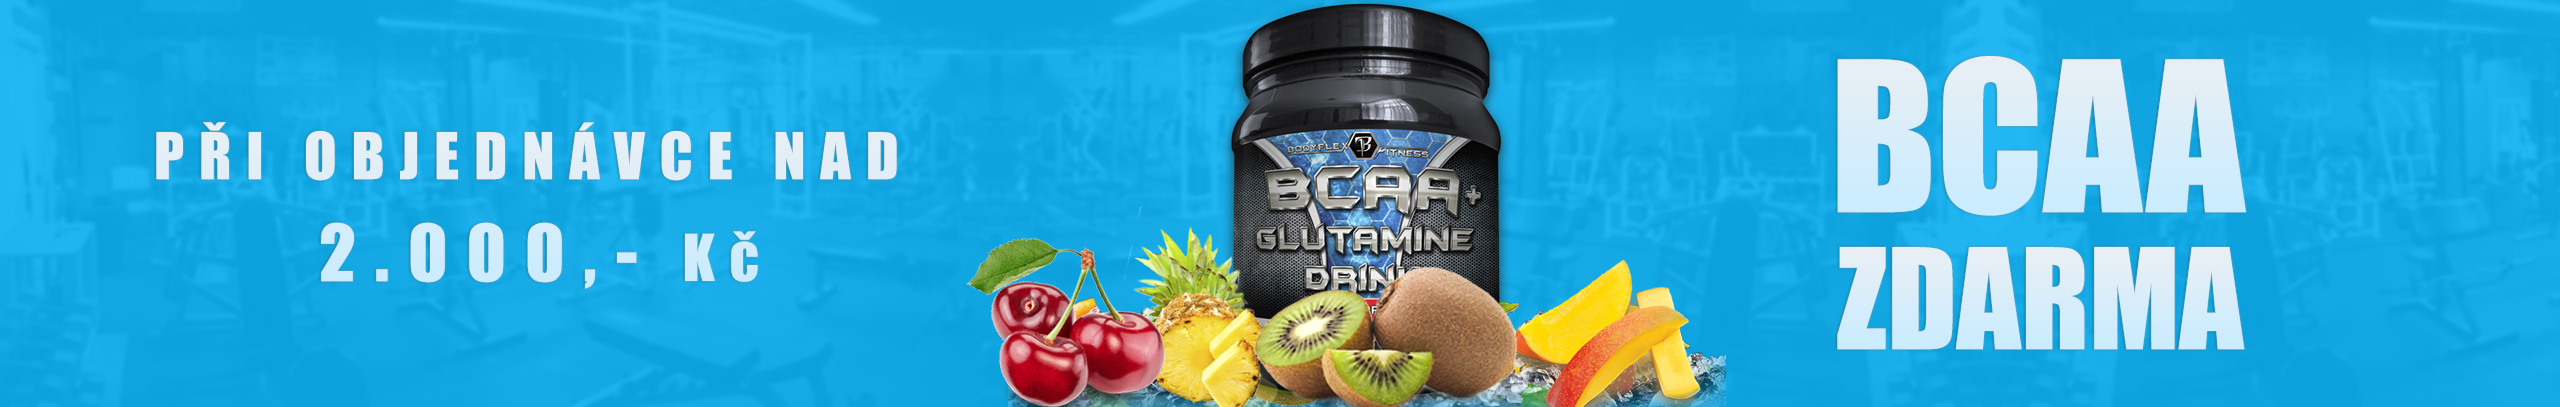 BODYFLEX Nutrition BCAA+Glutamine Drink ZDARMA